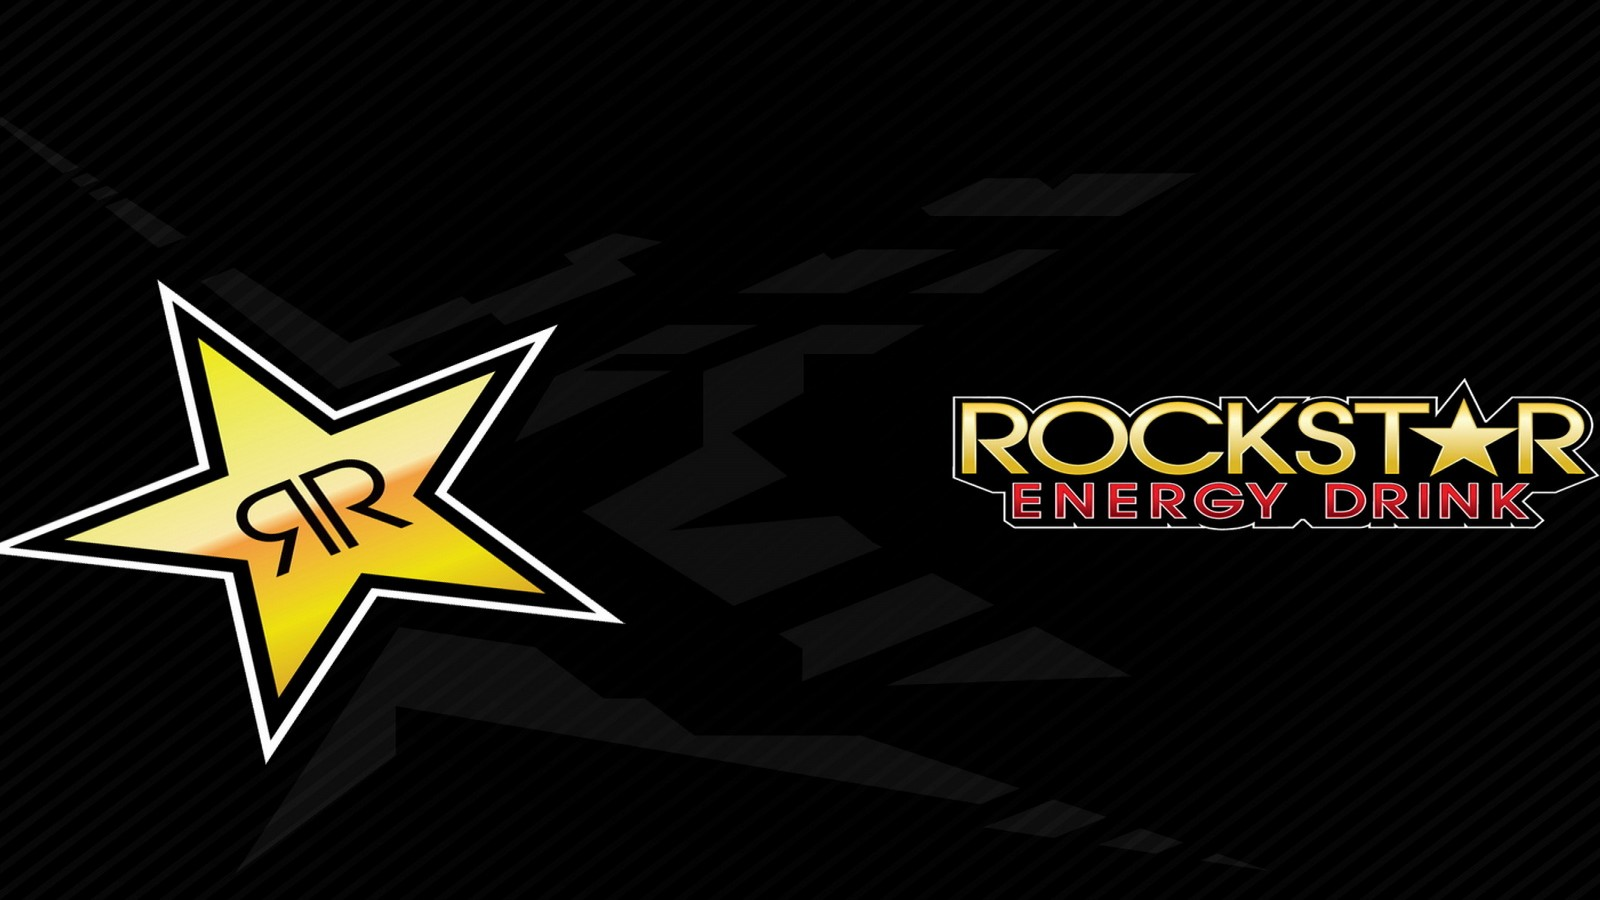 Rockstar Energy Drink Wallpaper 9 Background Wallpaper   Hivewallpaper 1600x900